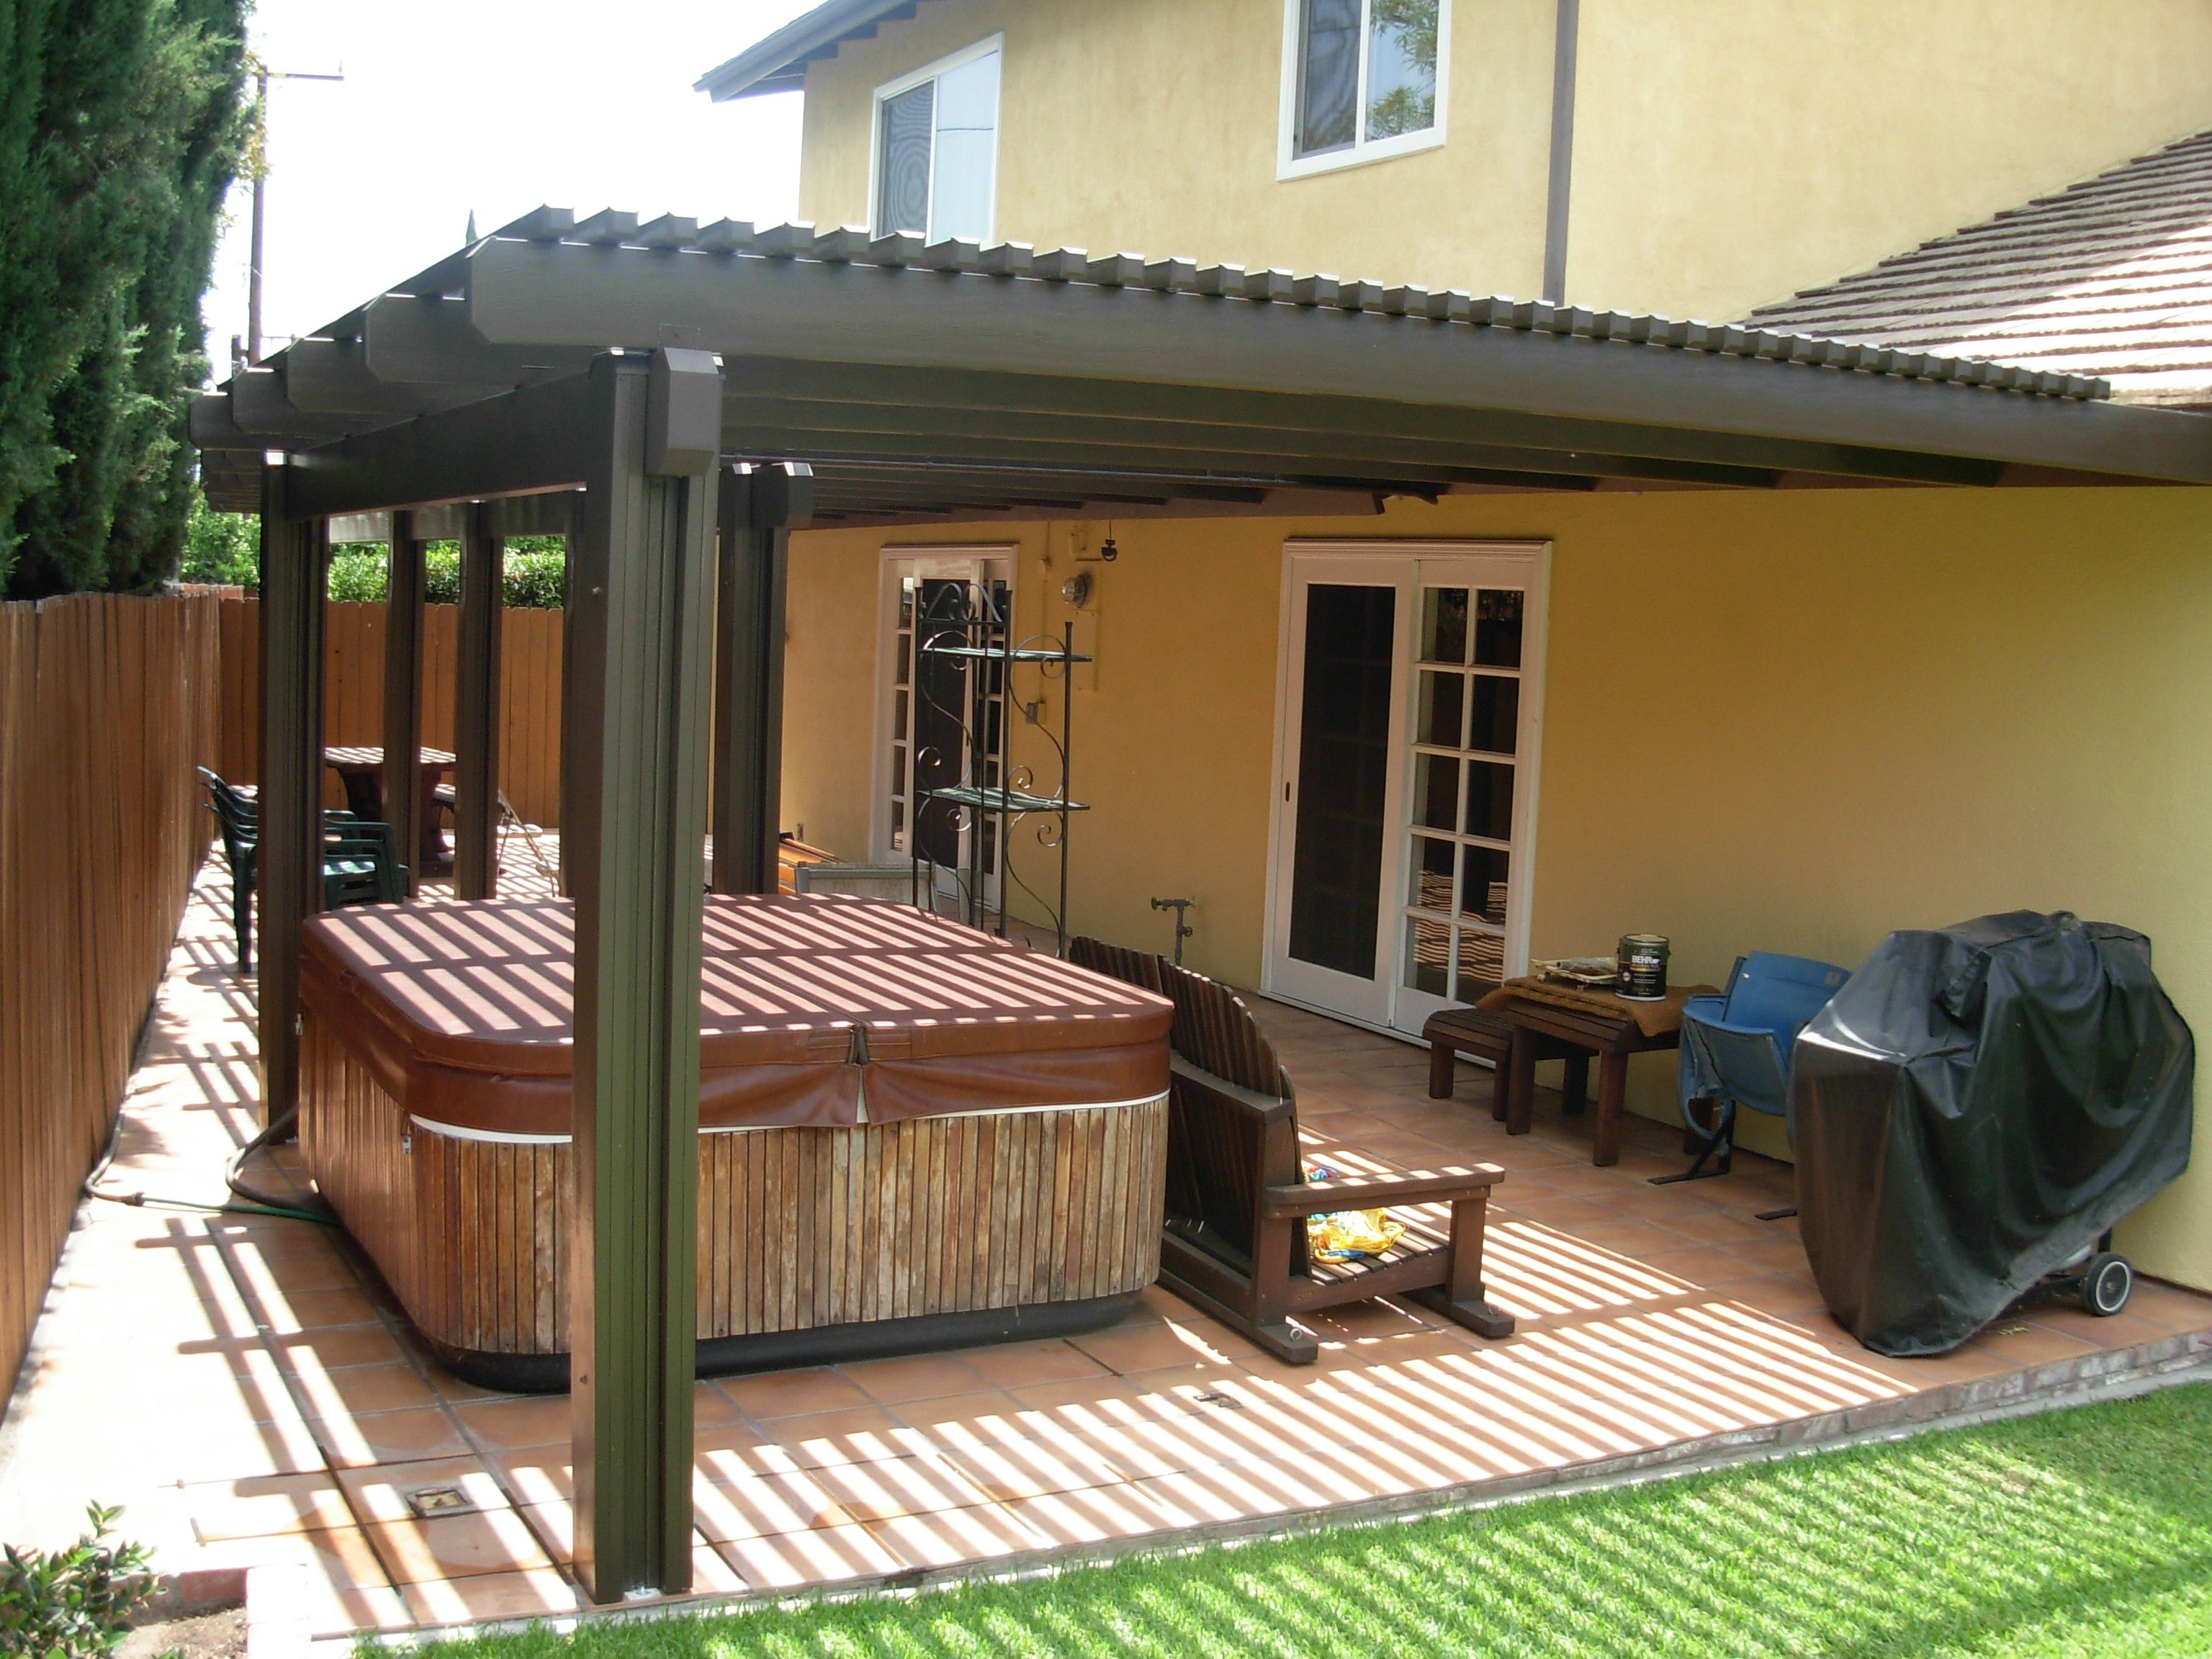 Alumawood Patio Covers Offer A Huge Variety Of Exclusive Products That Help  You To Find Style